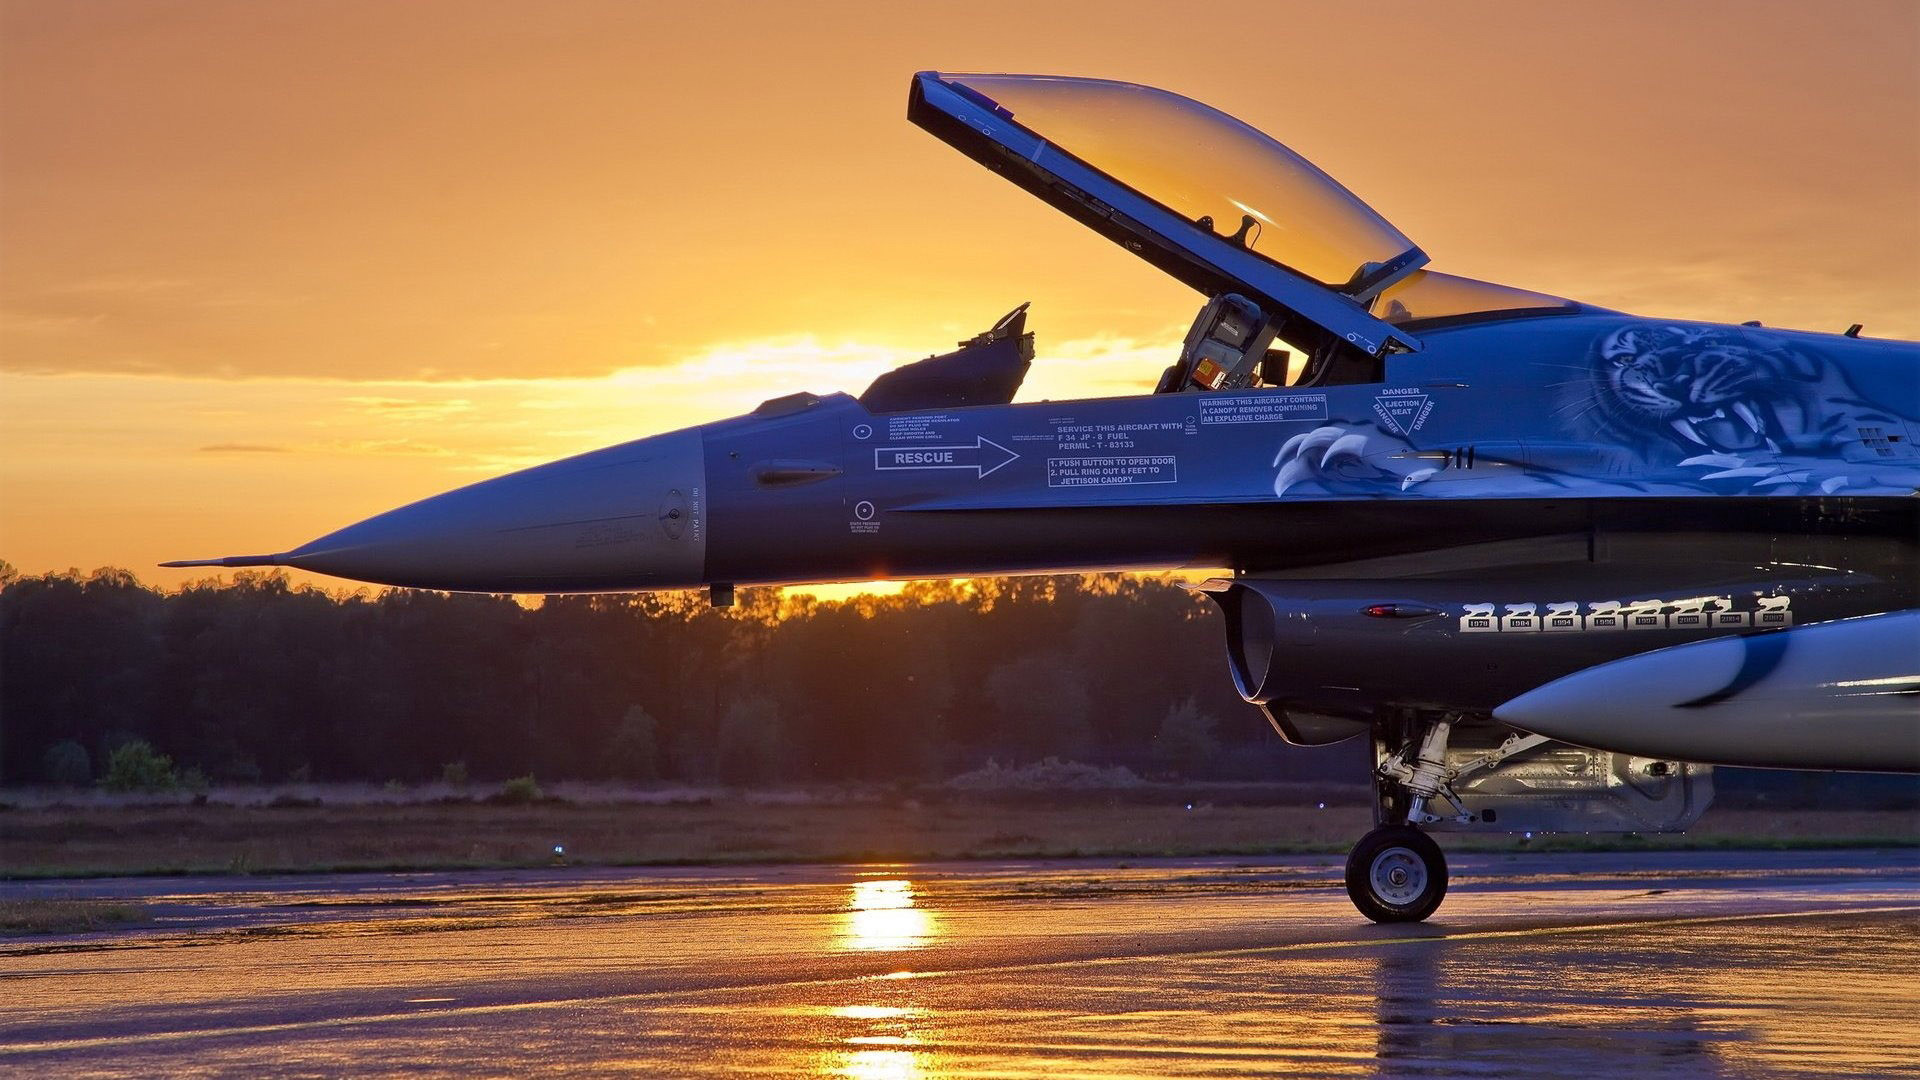 F-16 Wallpapers, HQ Definition Photos